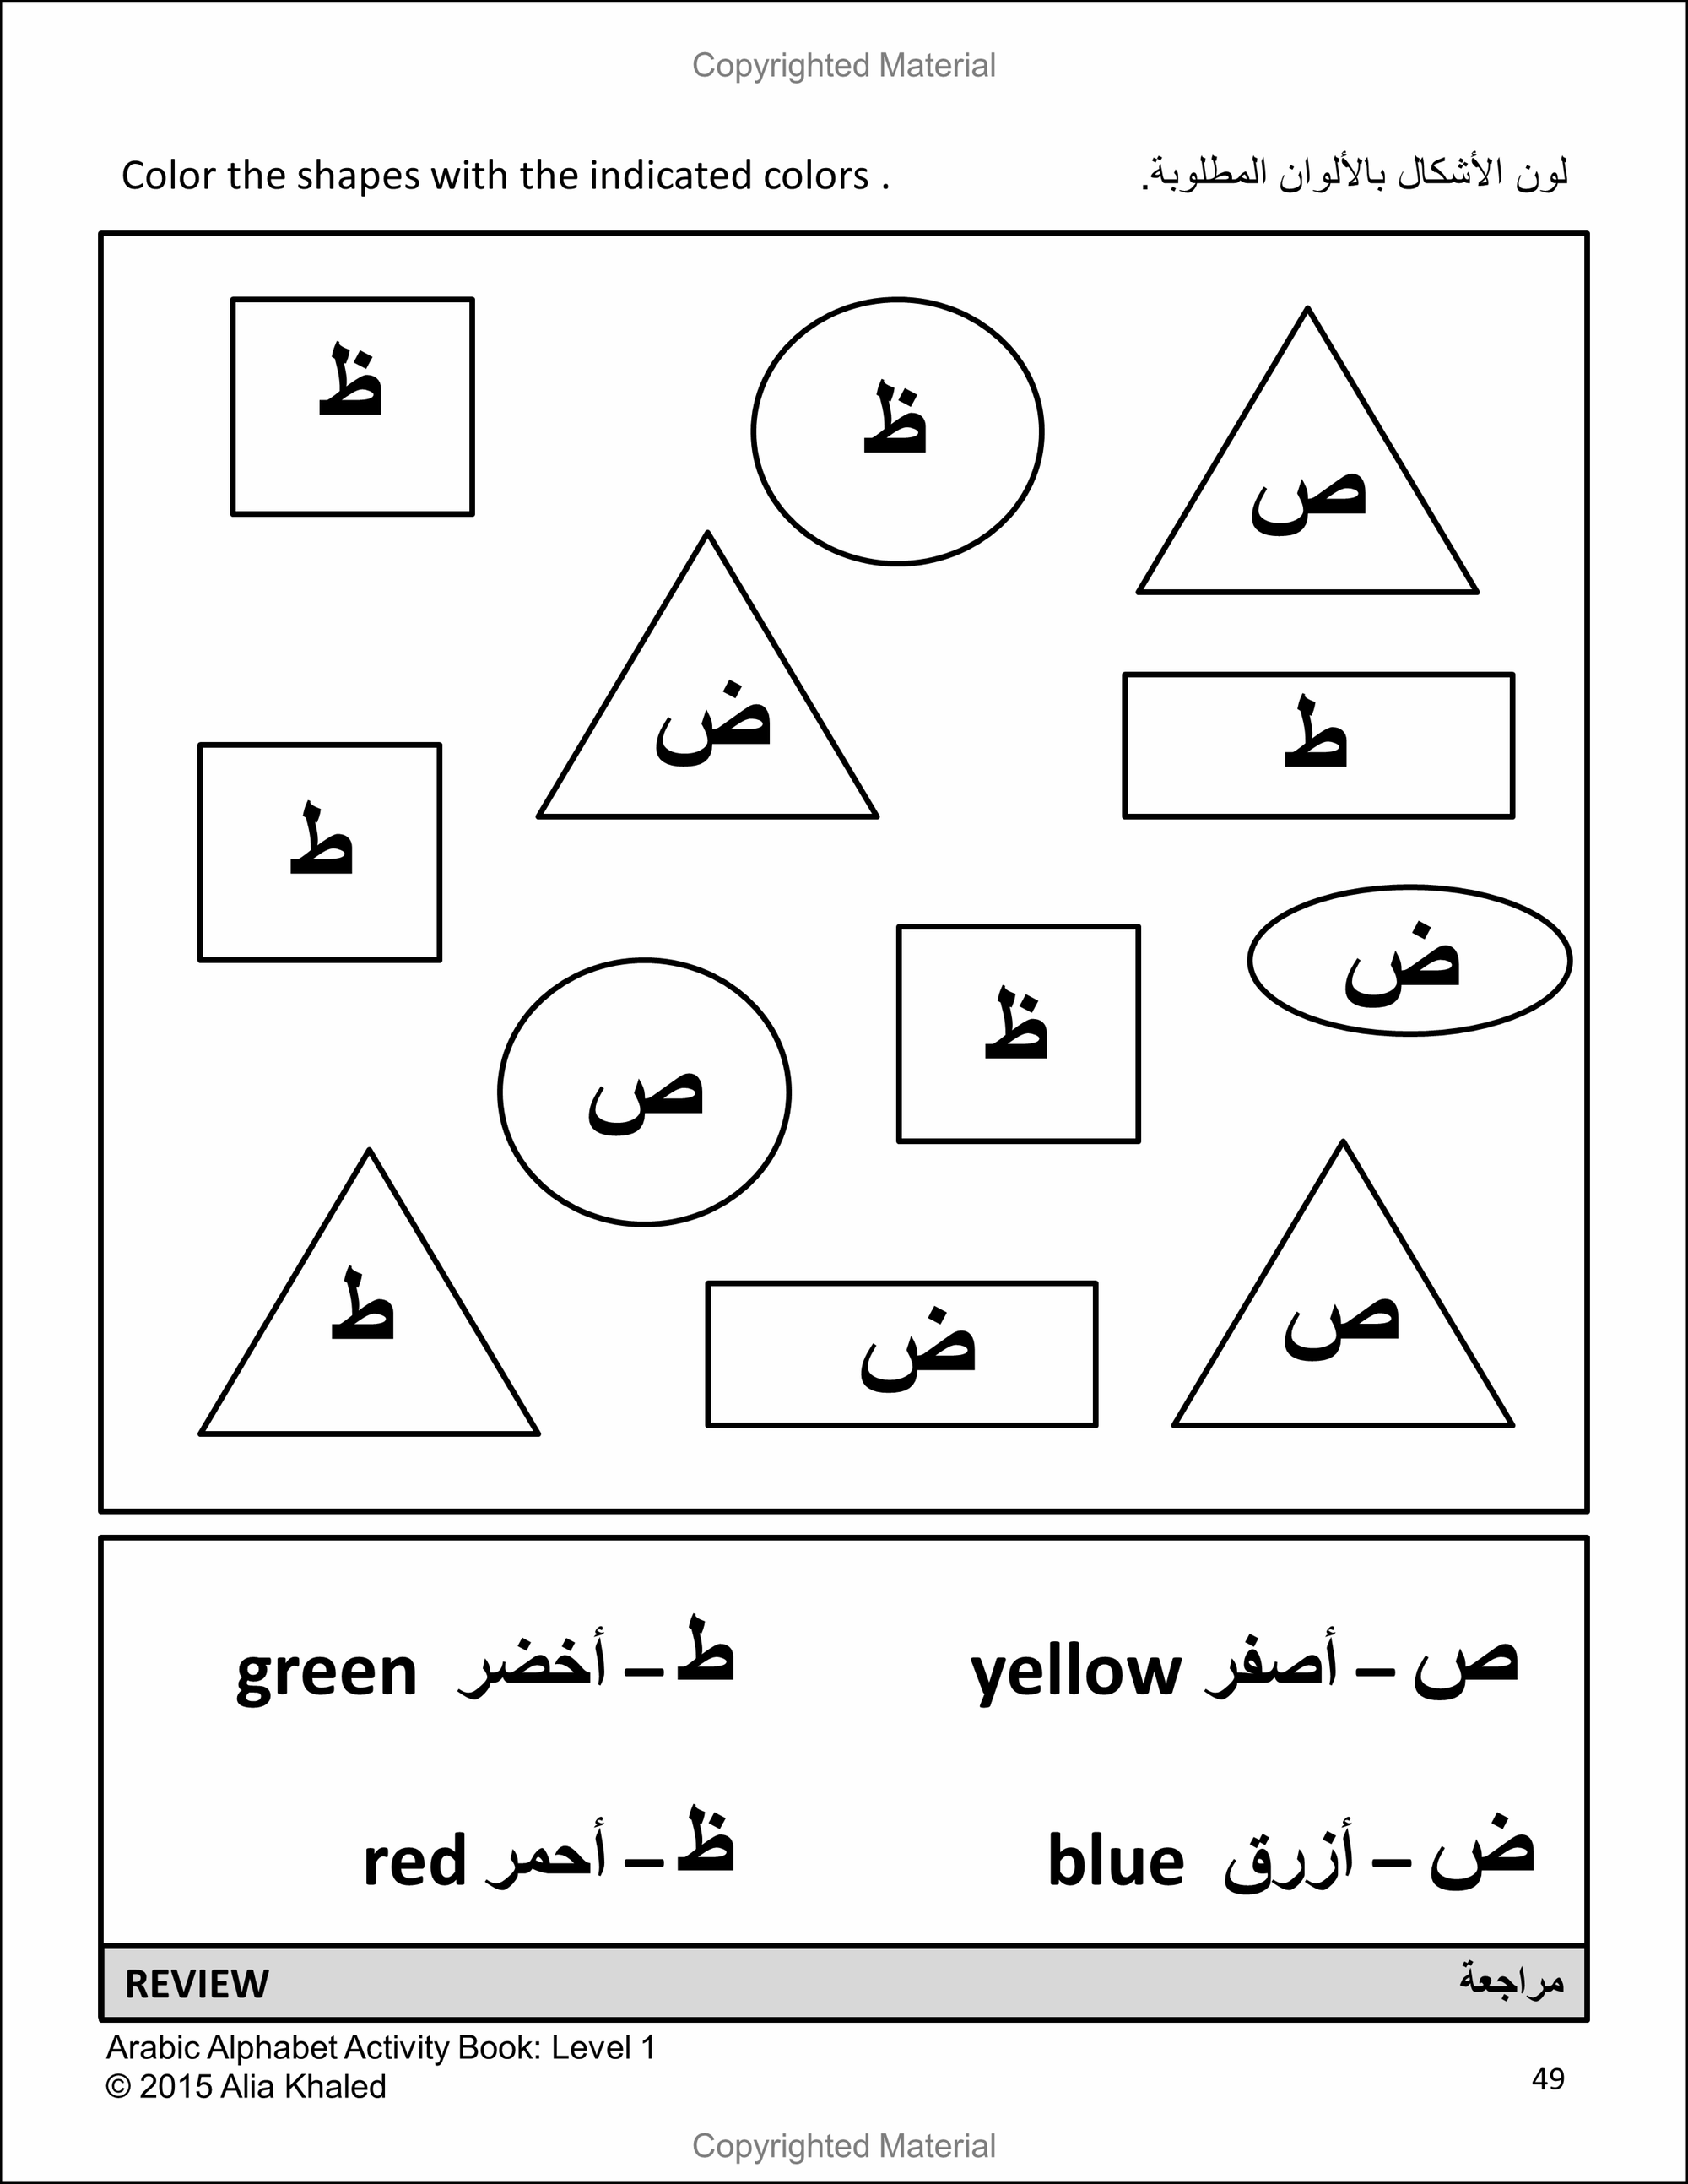 image of arabic alphabet activity book level 1 black white edition for kids pinterest salat. Black Bedroom Furniture Sets. Home Design Ideas